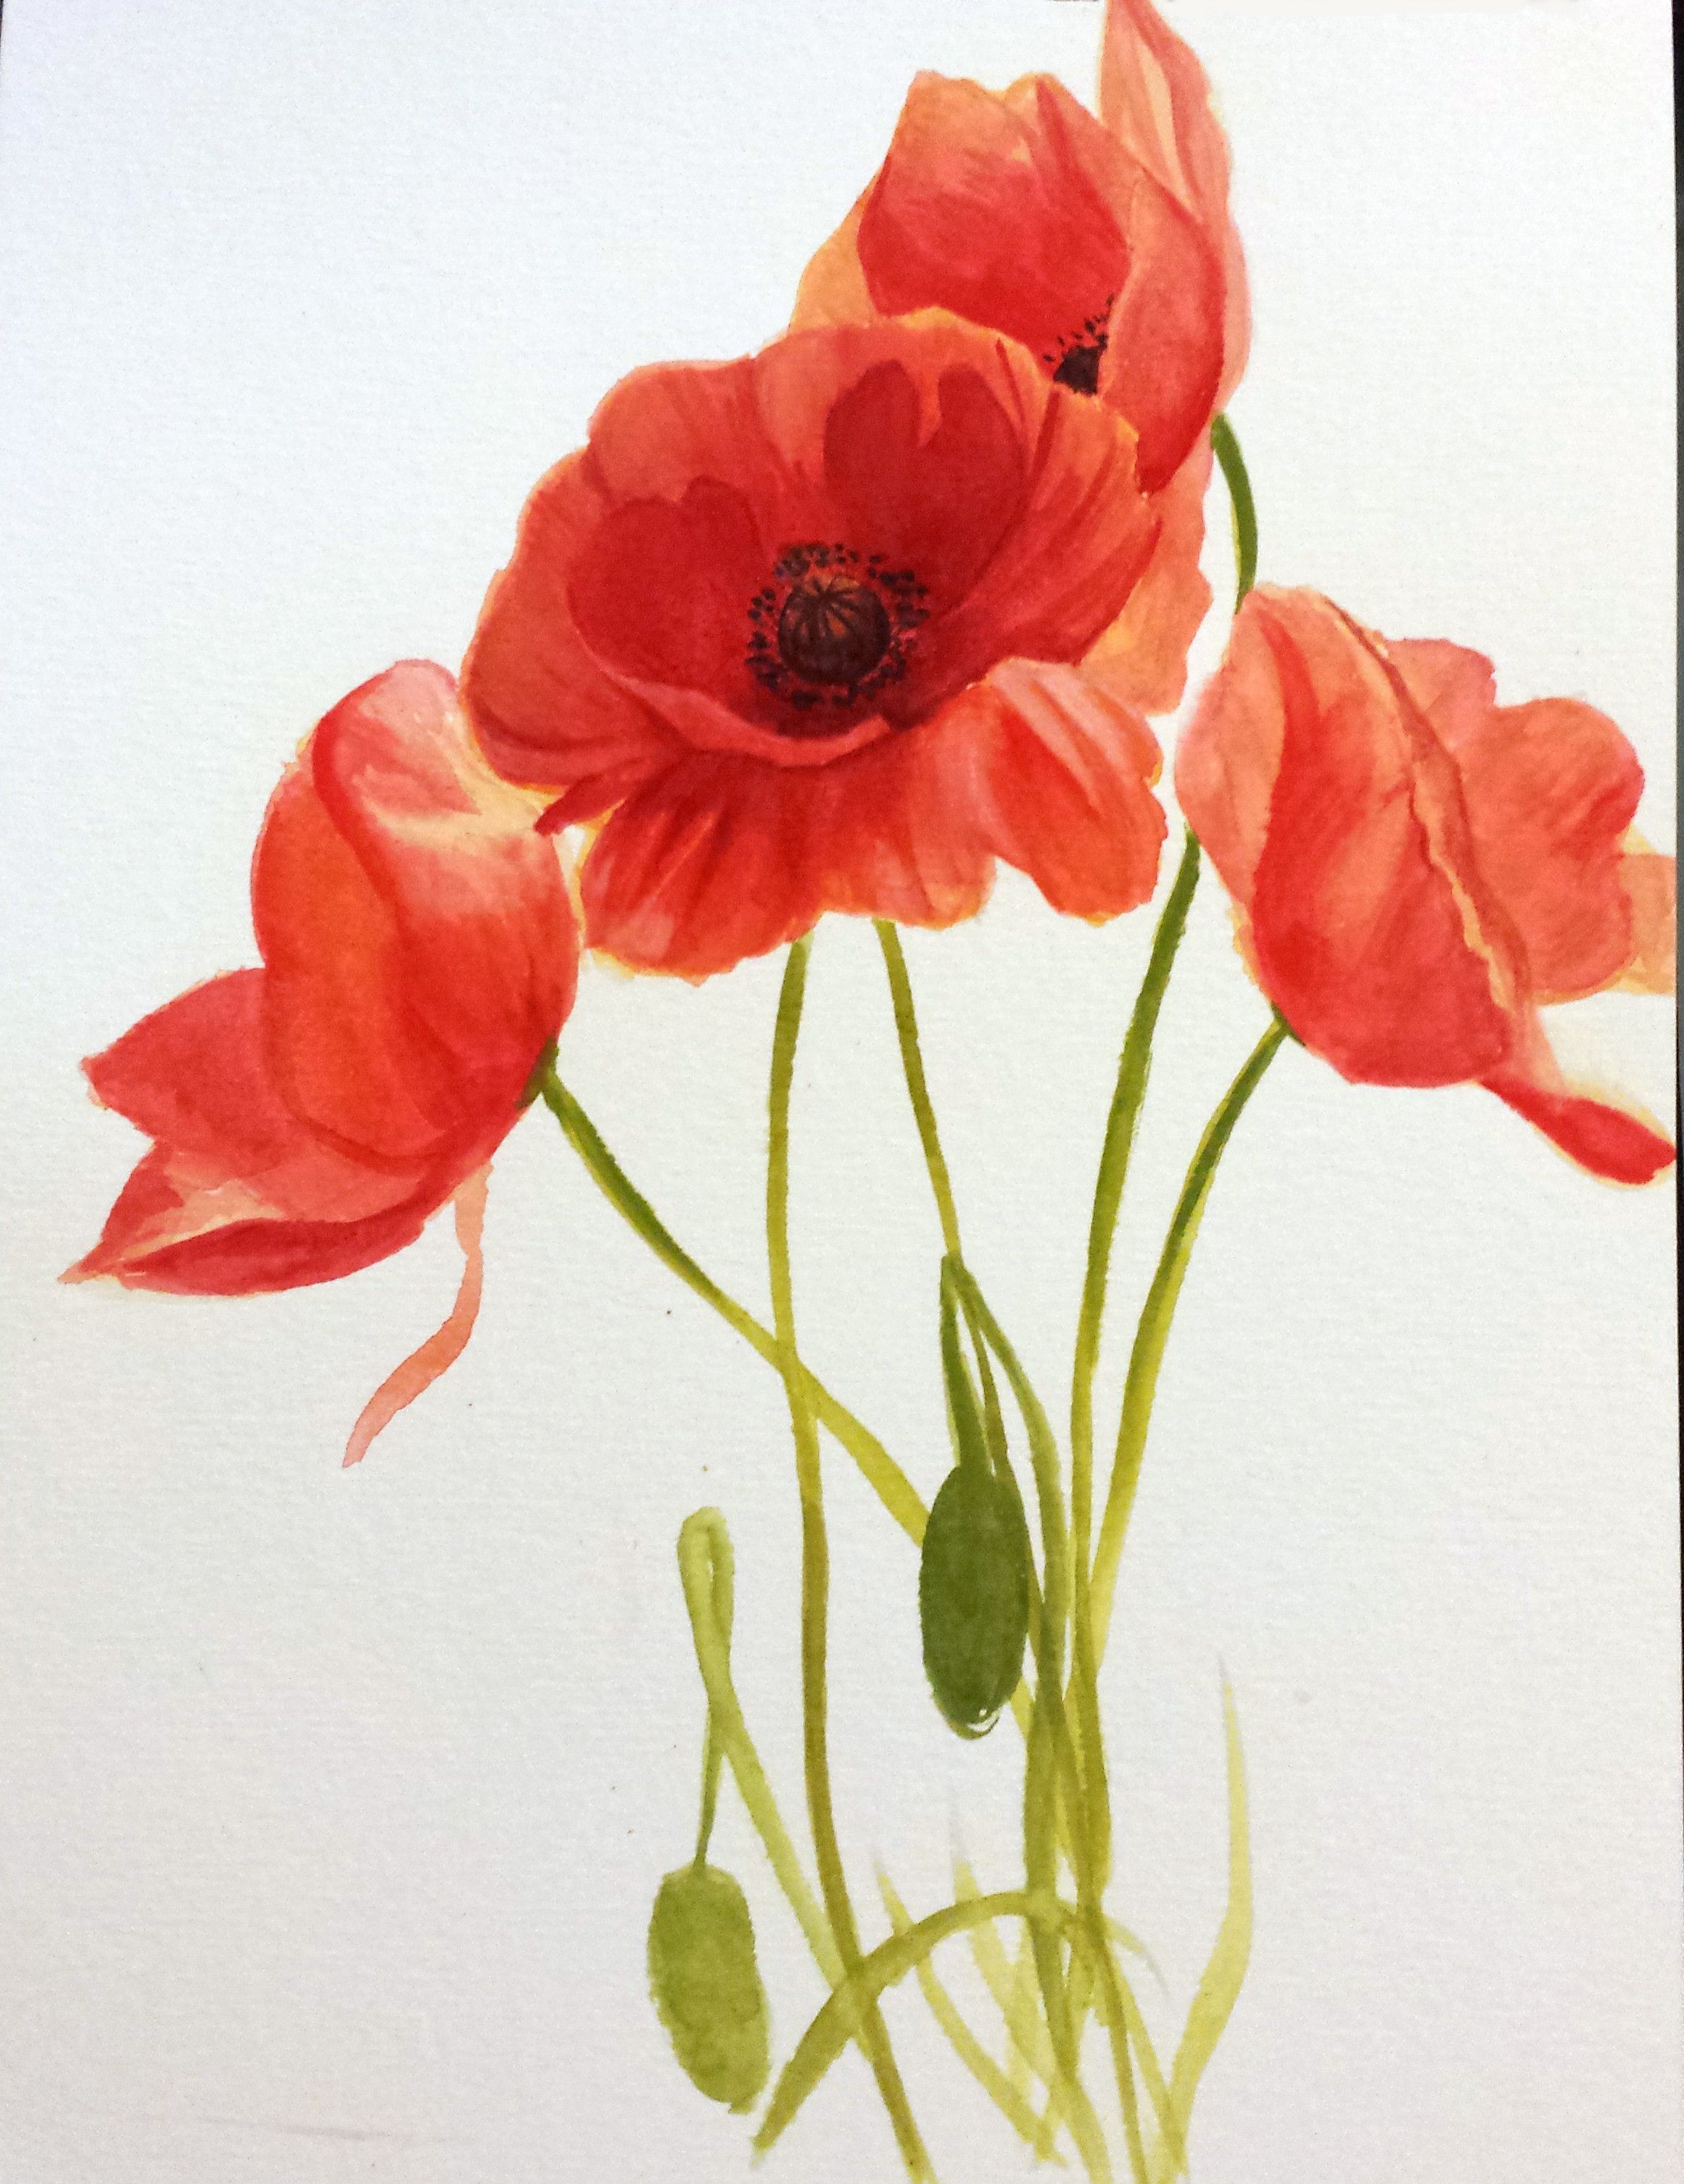 April 21st Flower Week Day 1 The Poppy Flower Sketchdaily